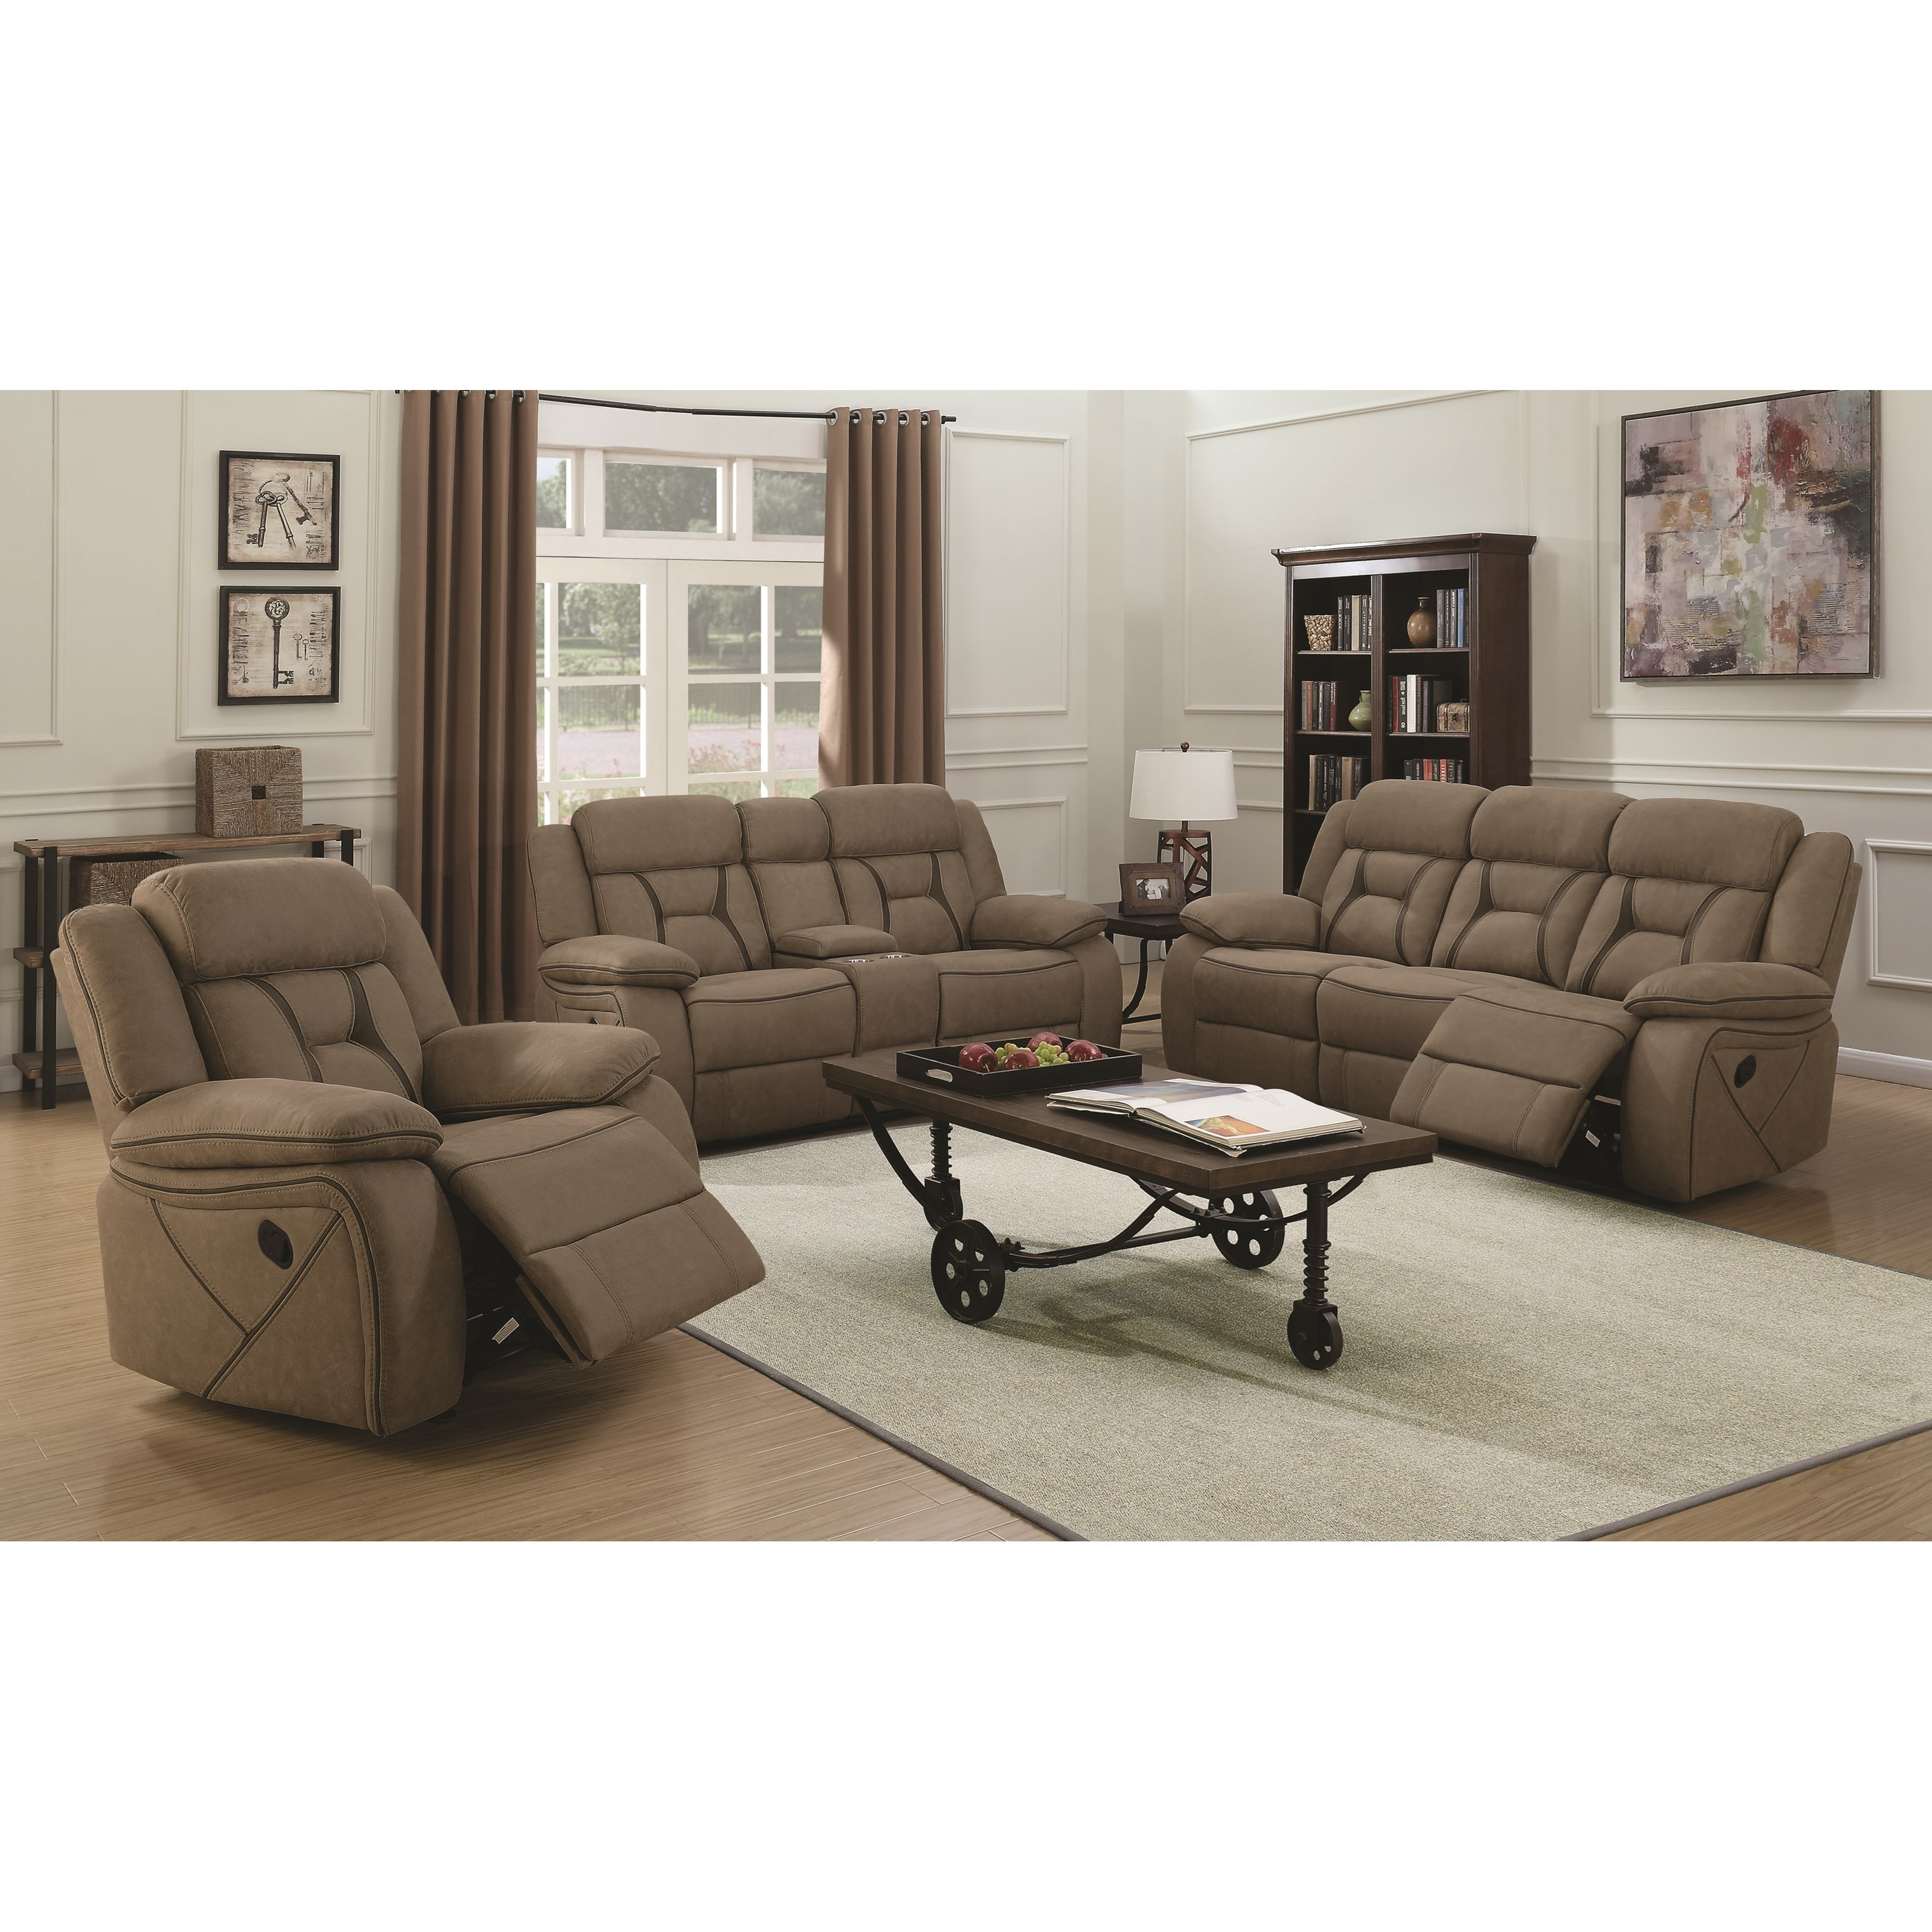 Sectional Sofa Sale Houston: Coaster Houston Casual Pillow-Padded Reclining Sofa With